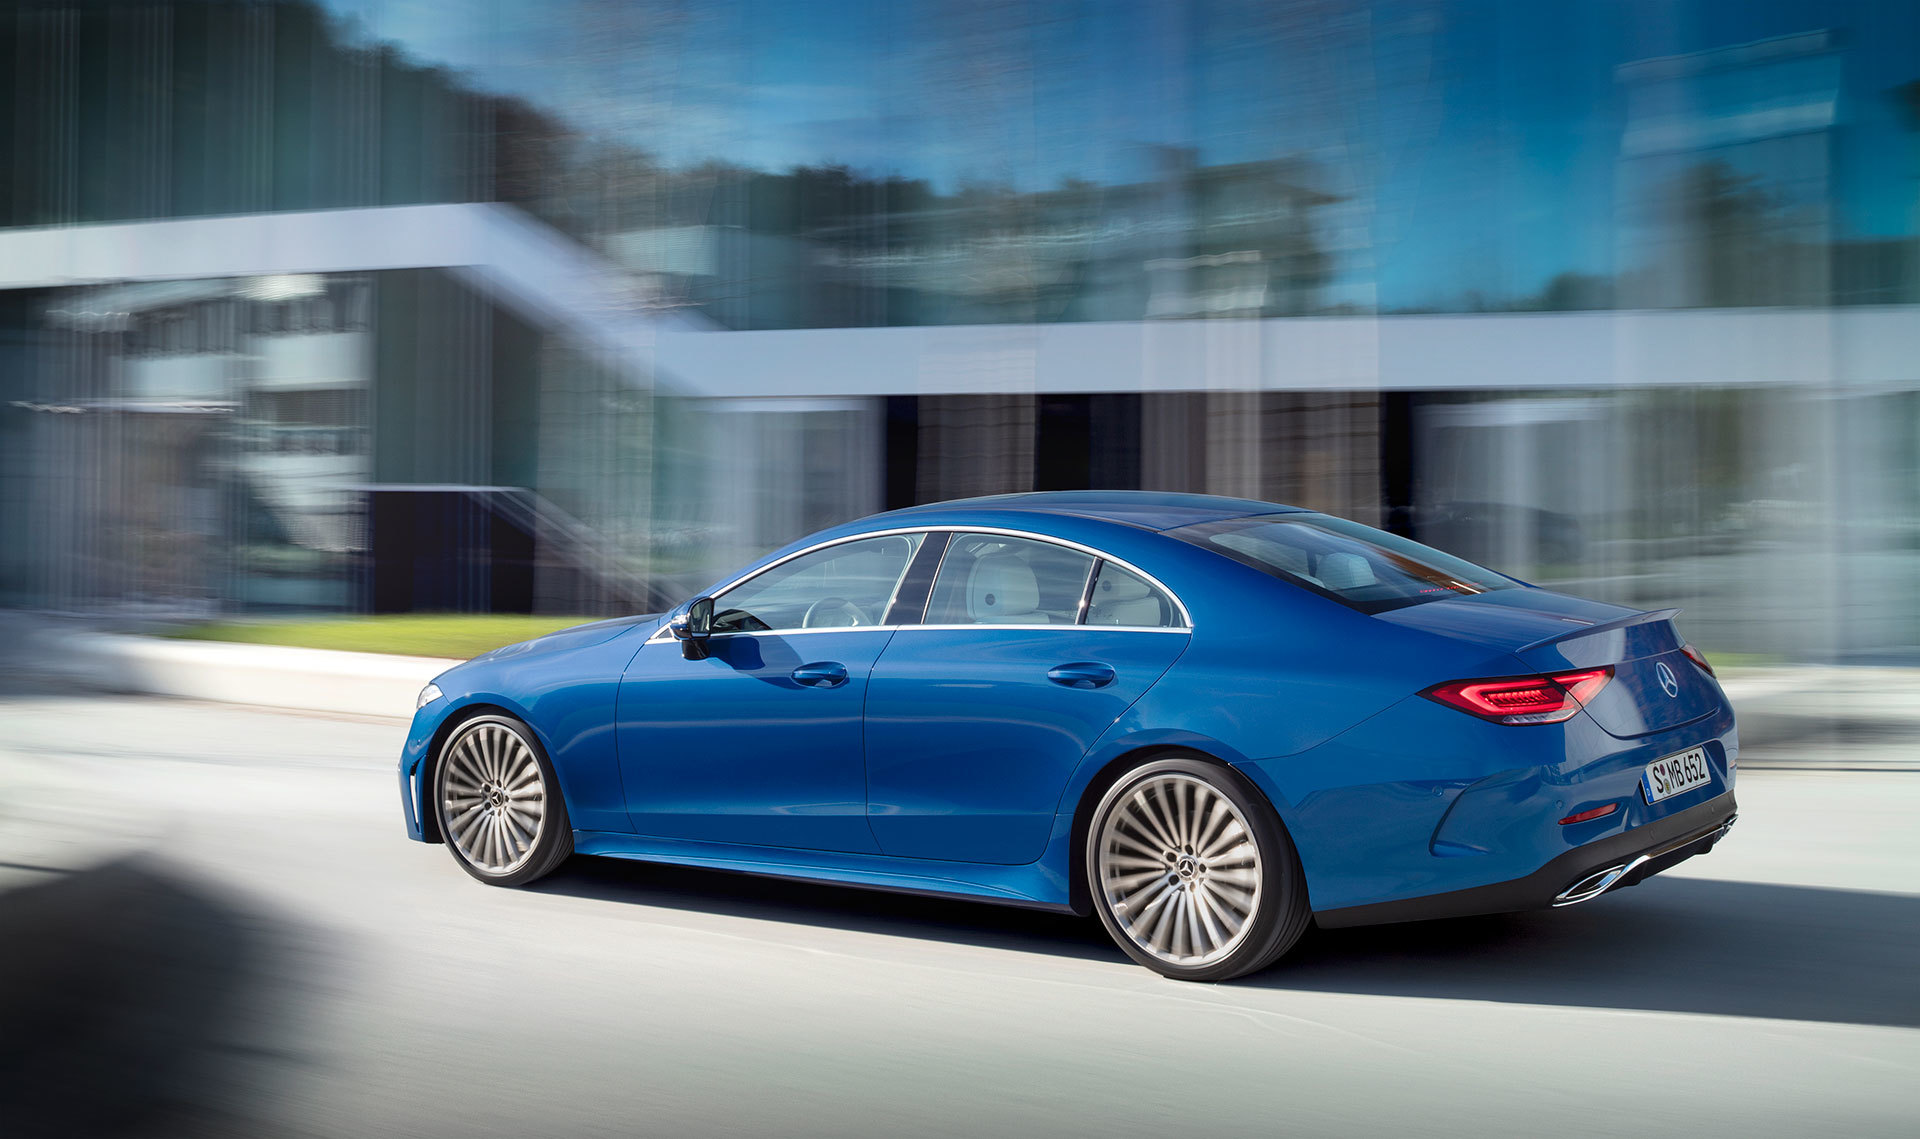 Mercedes Cls Coupe 2021 Azul Amg Line 01